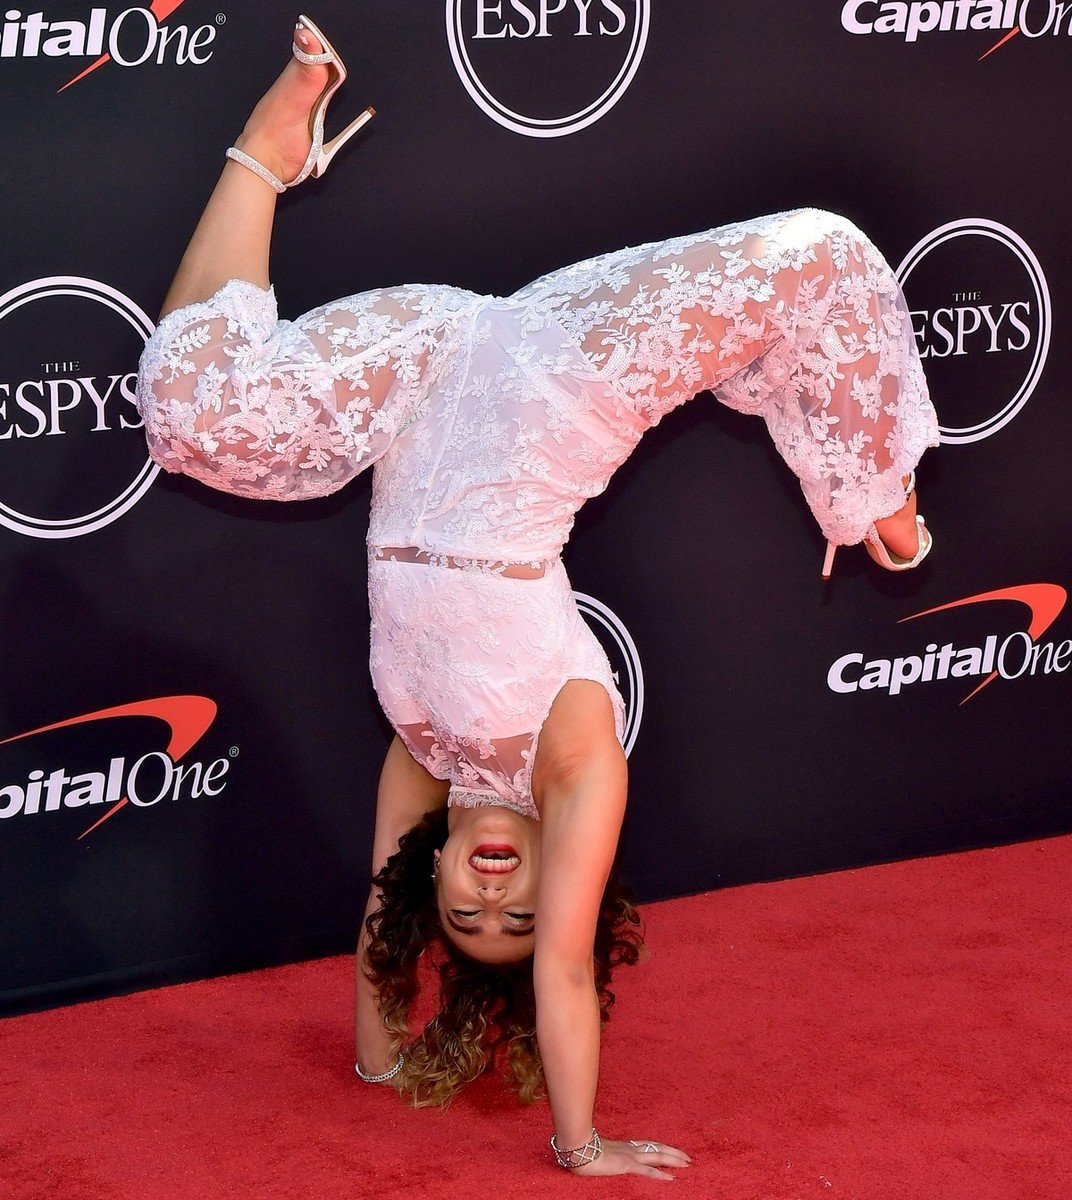 Gymnast Katelyn Ohashi Handstands Down The Red Carpet Like The Boss She Is #ESPYAwards https://follownews.com/5uzcd